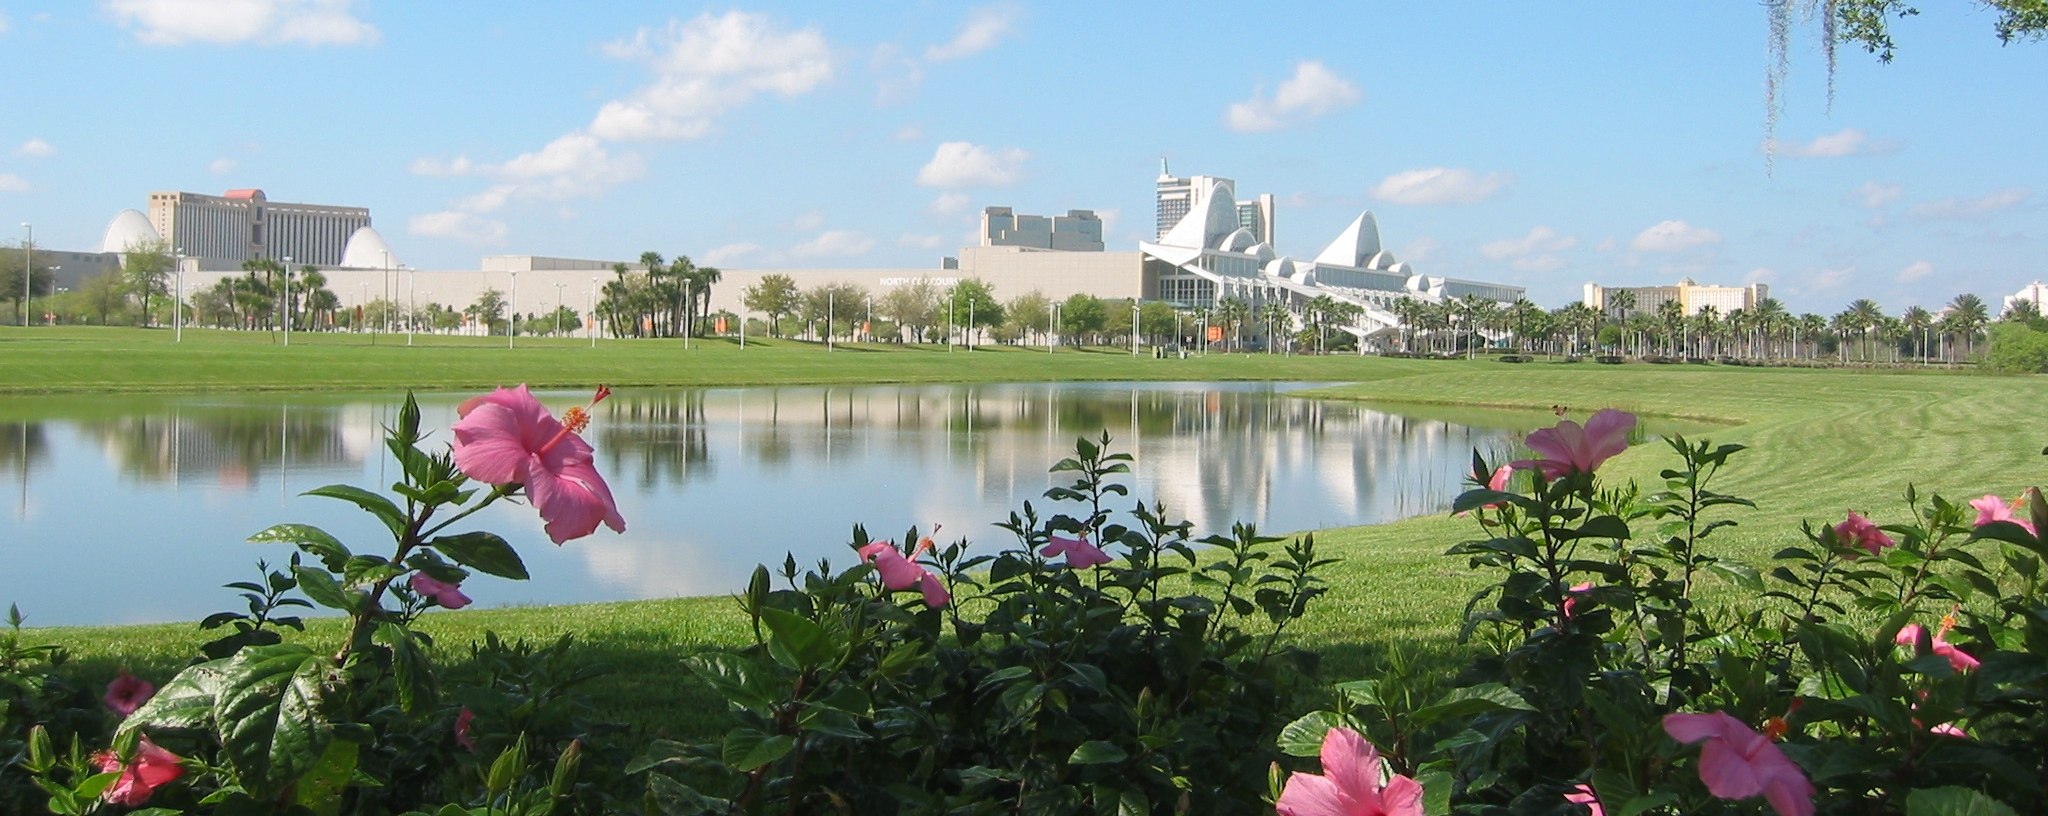 Construction Boom Is Back As Home Builder Shows Become Orlando 39 S Largest Convention Orlando